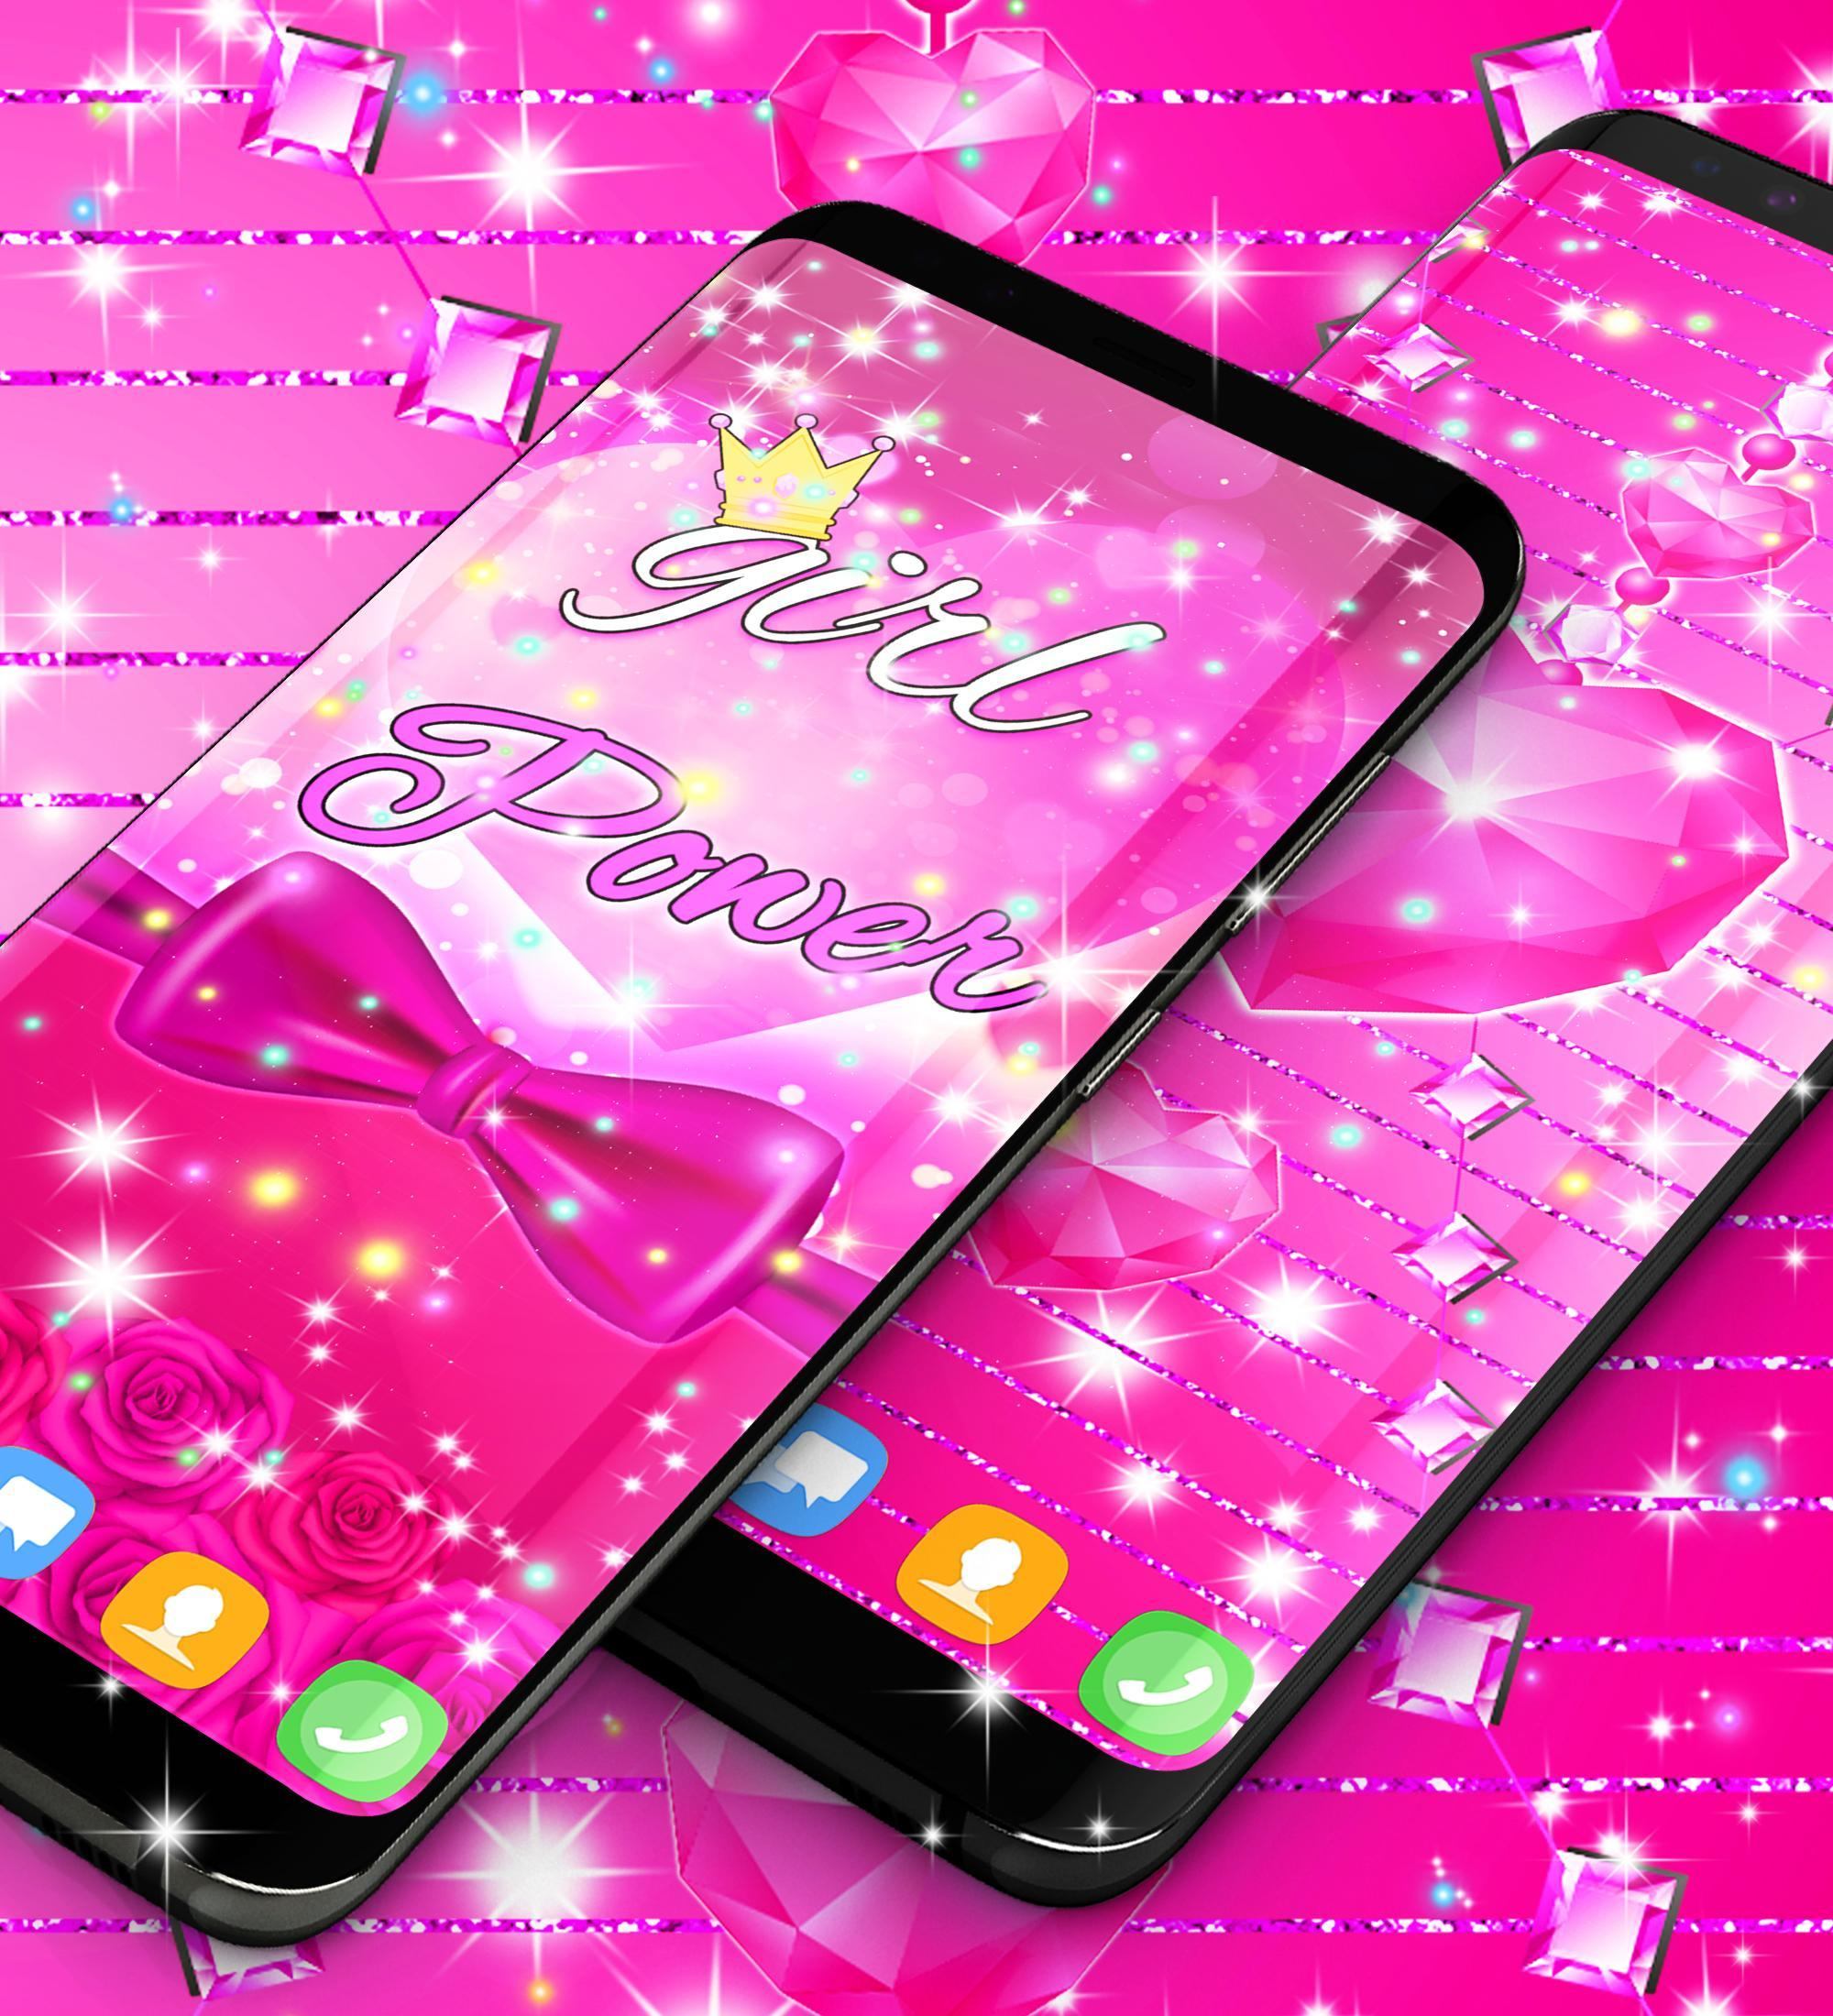 Girly Active Wallpapers on WallpaperDog